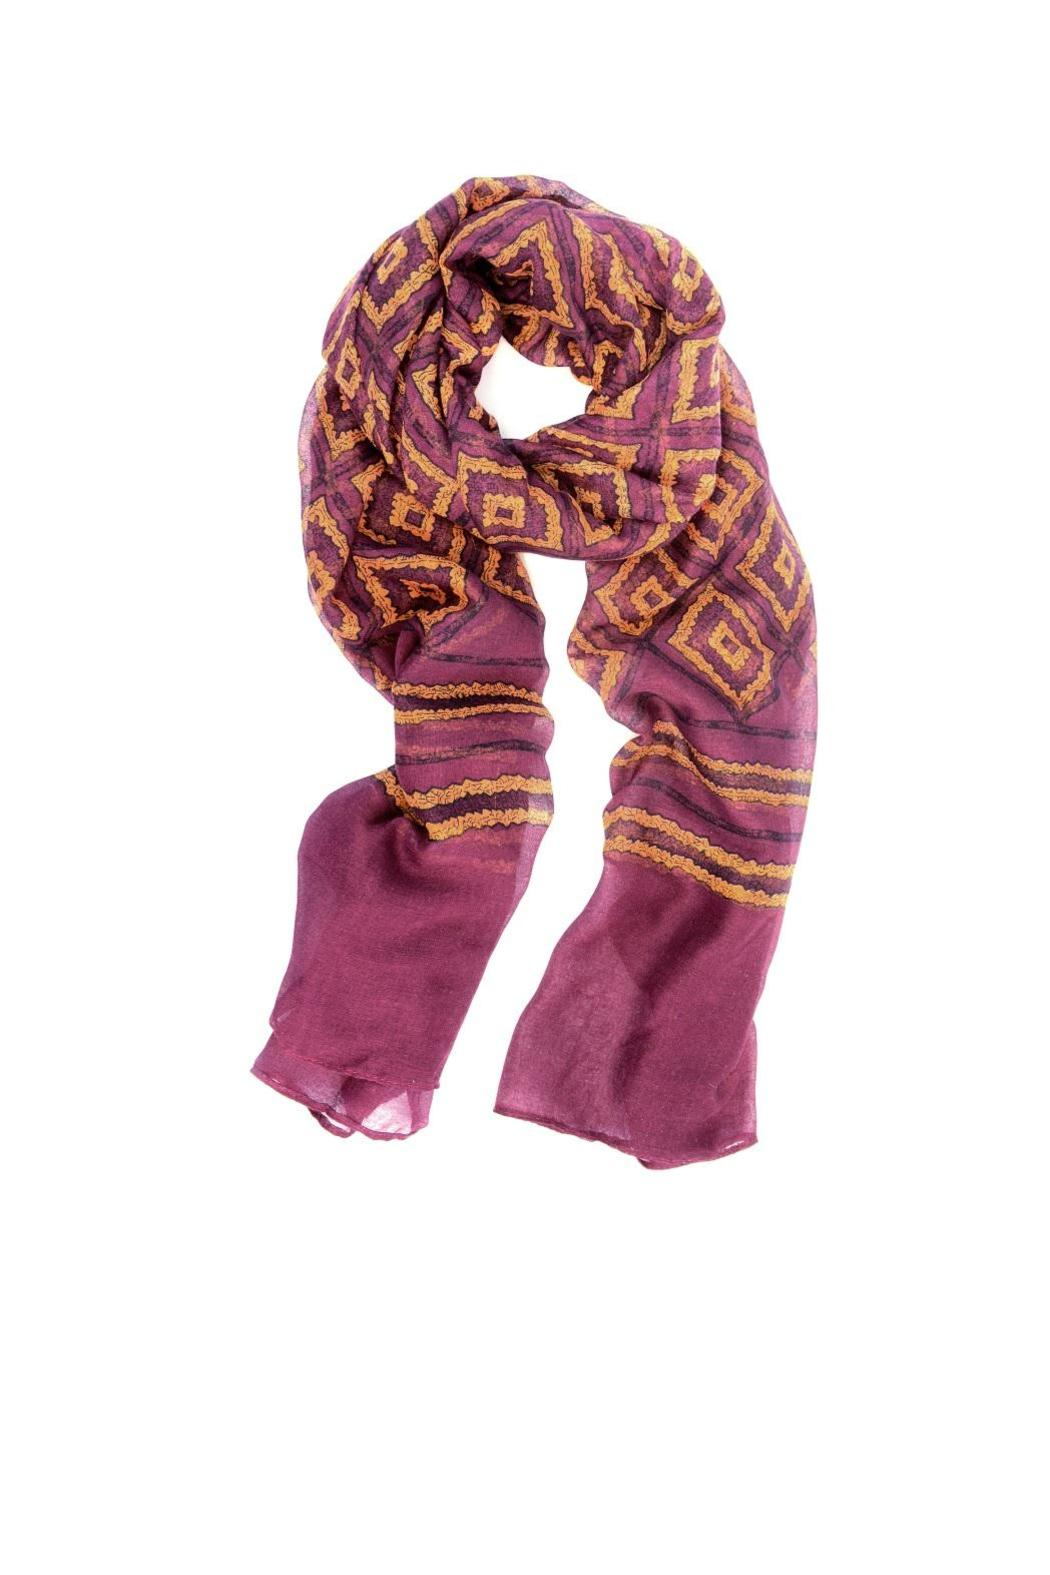 Joy Susan Accessories Maroon Diamonds Scarf - Main Image